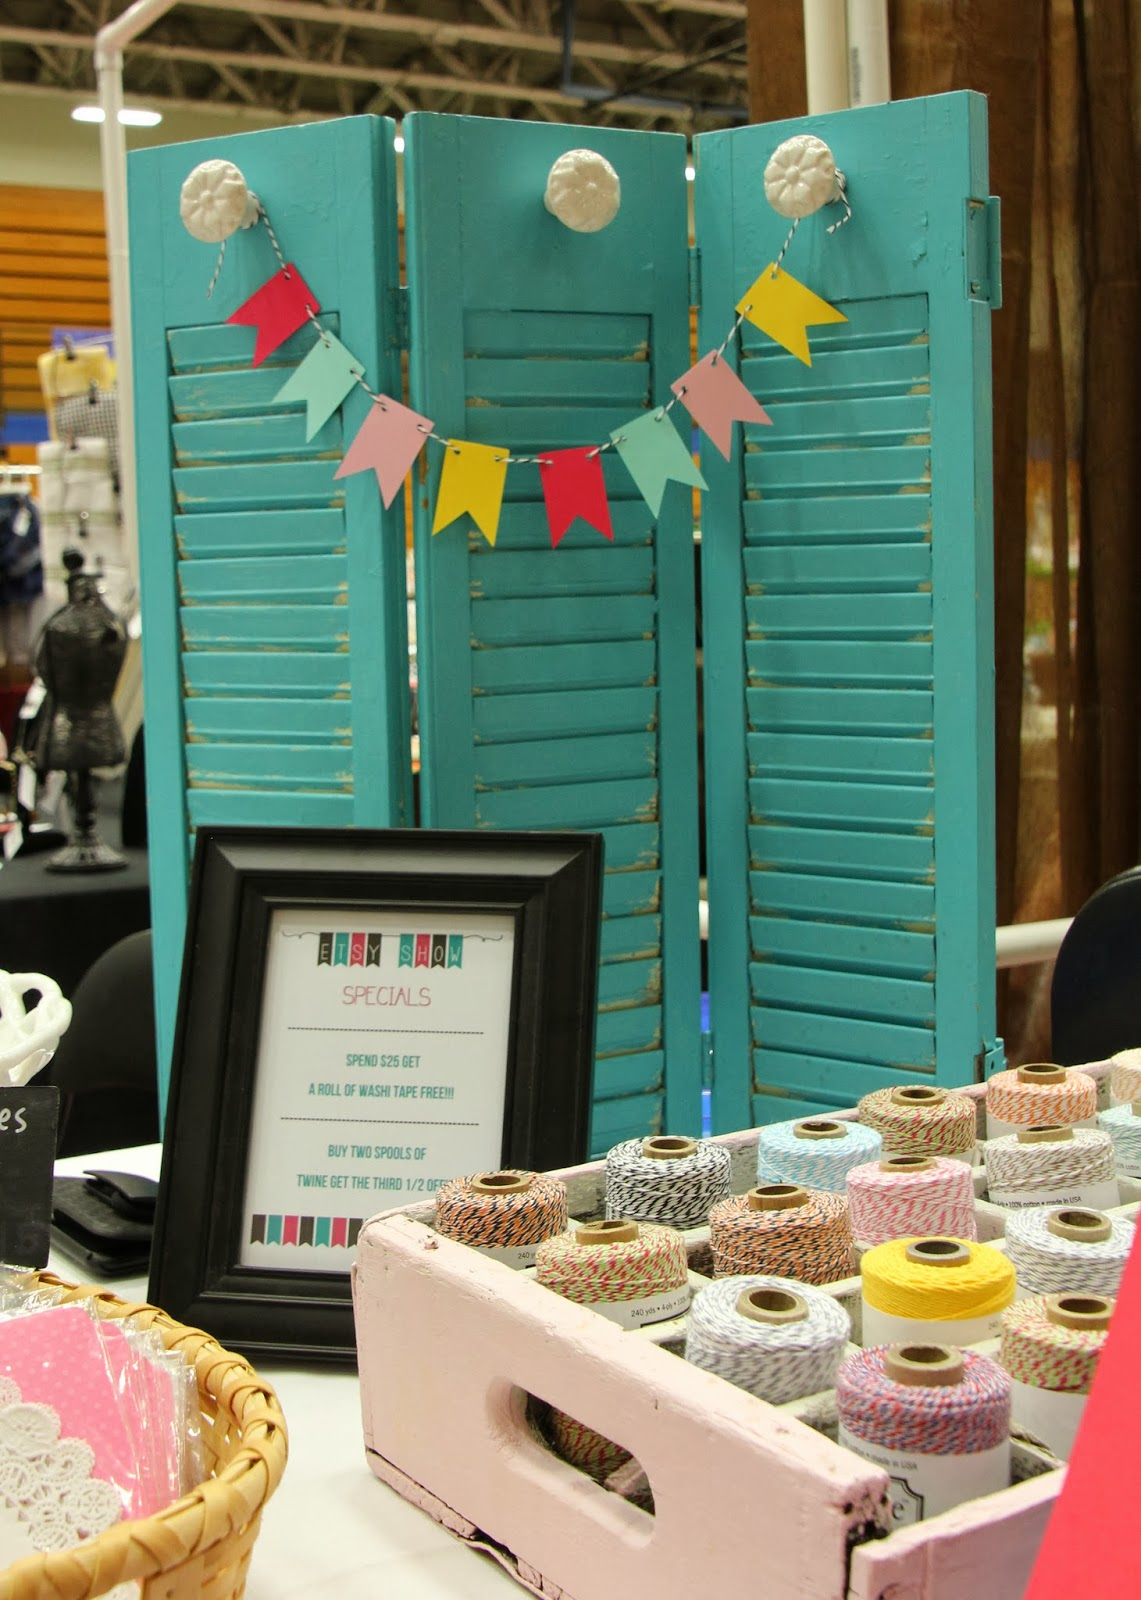 Exhibition Displays Ideas : Lovely little life etsy artists of indiana craft show